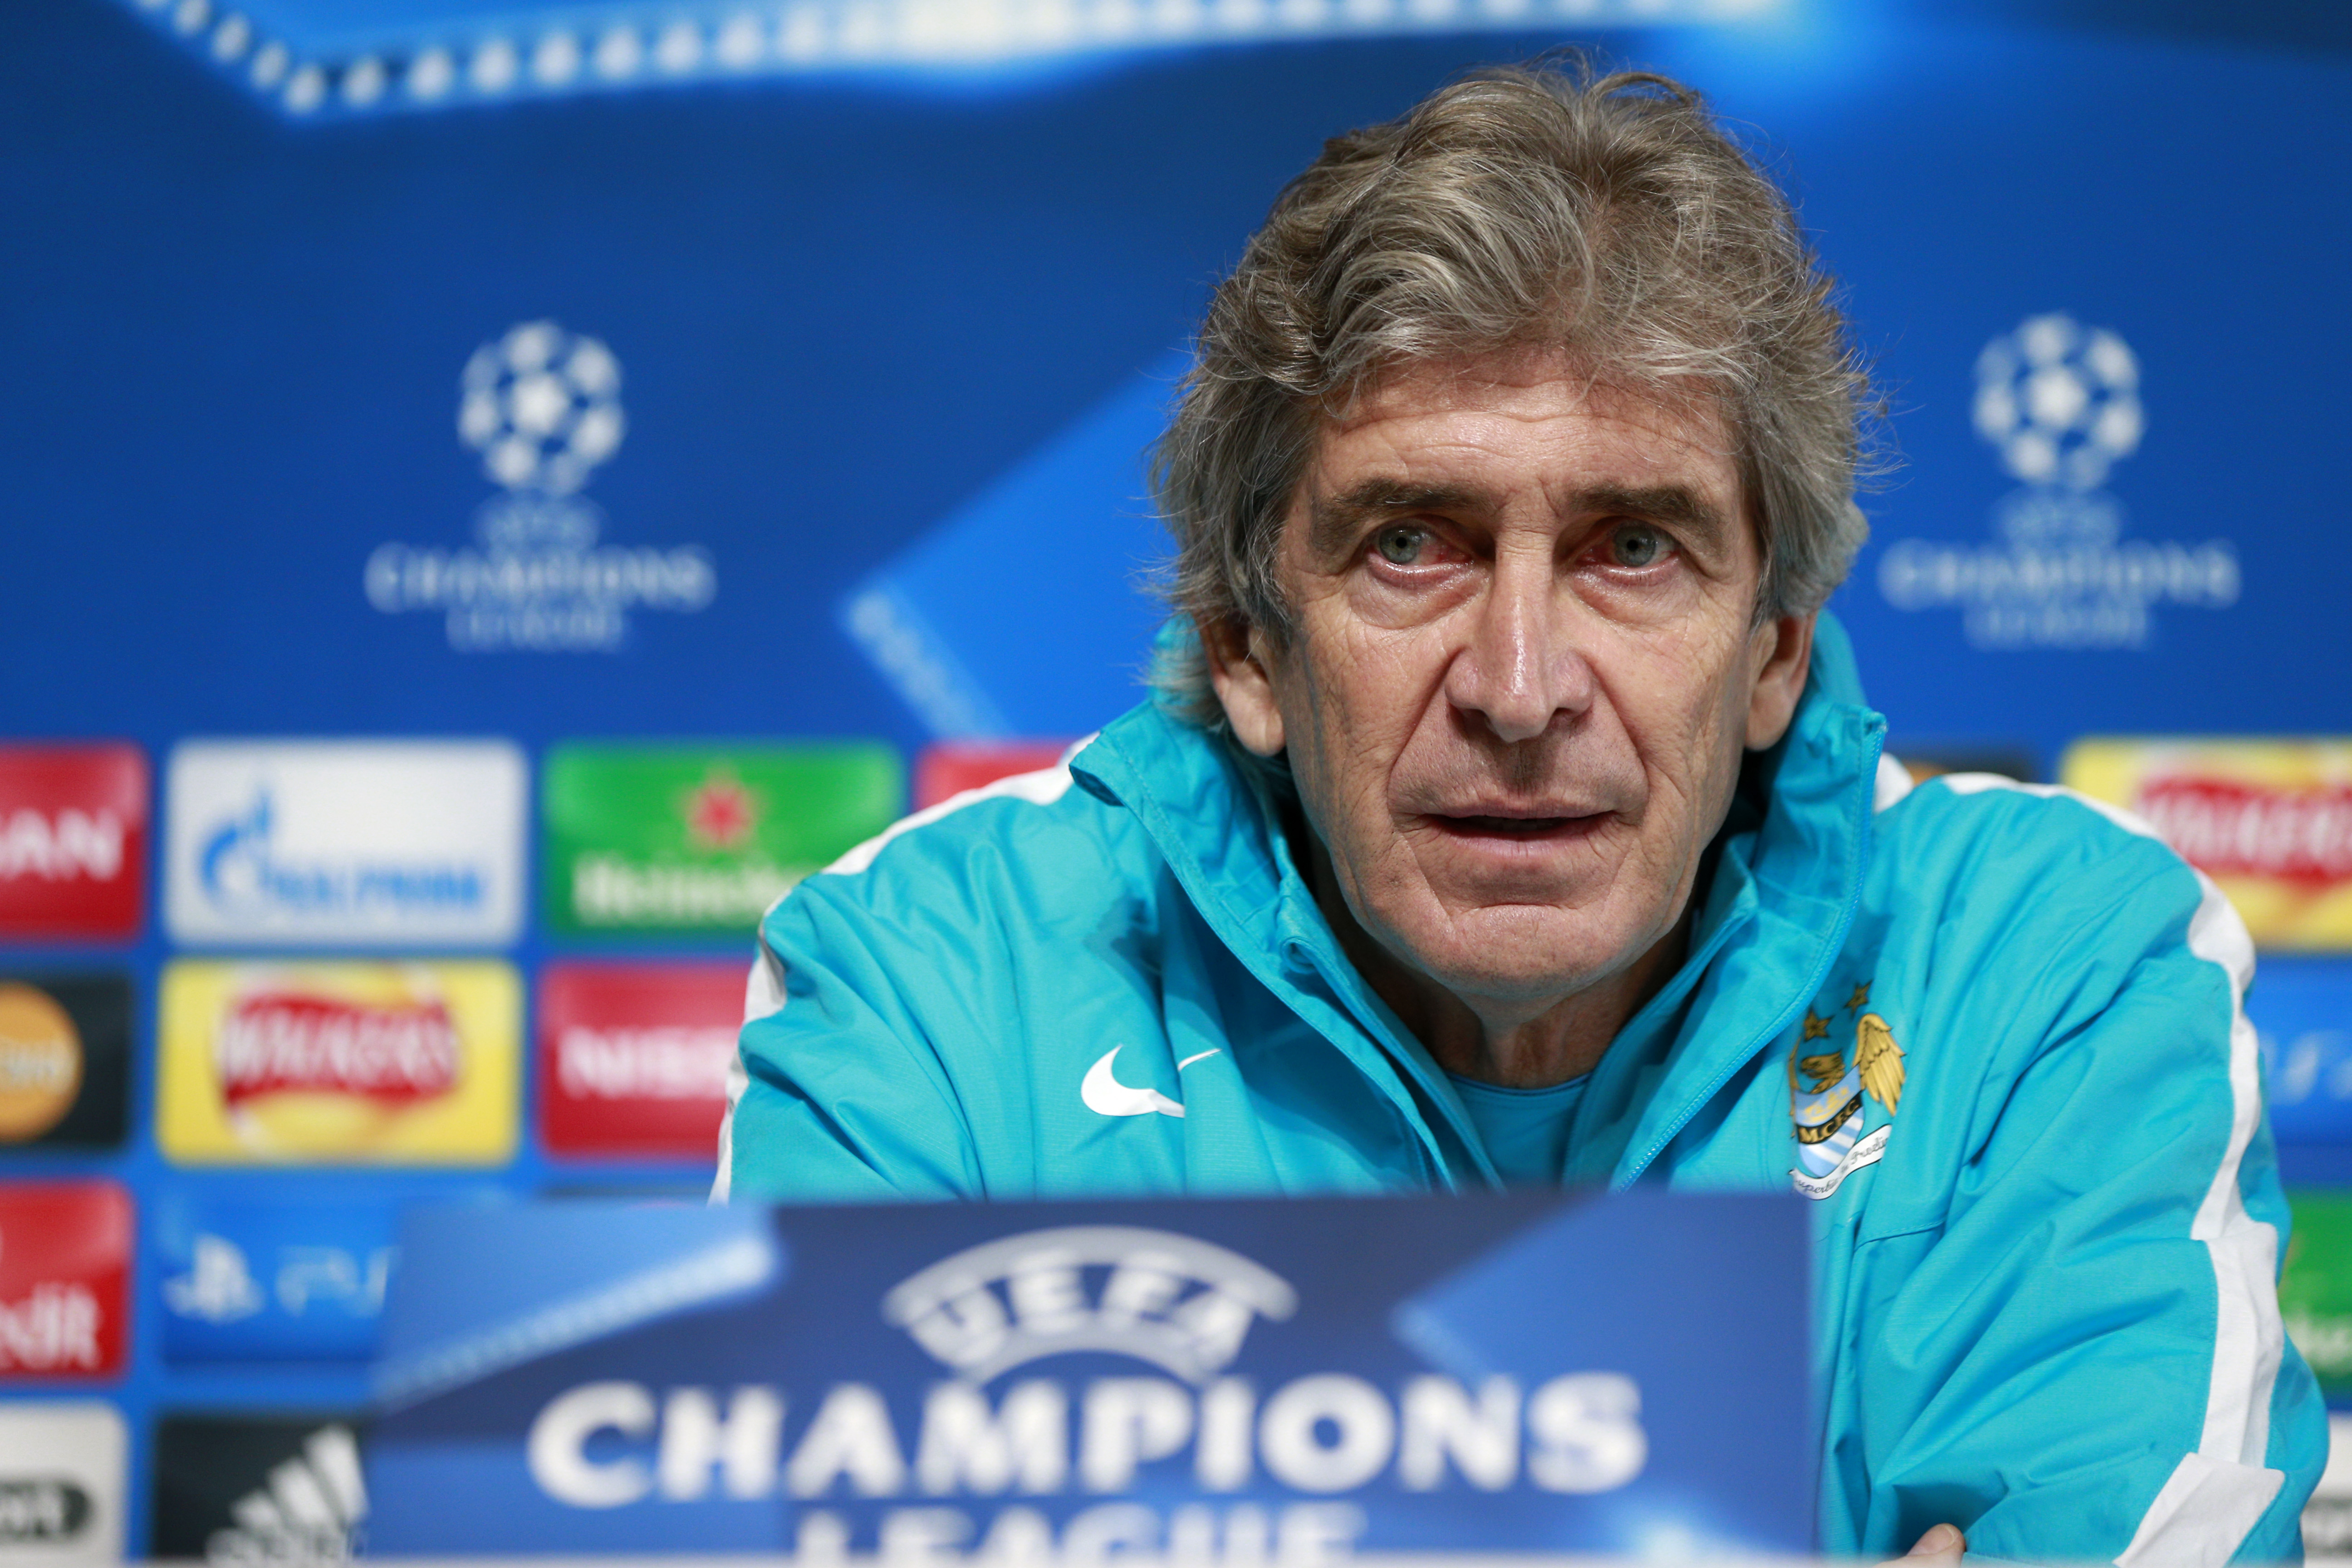 Manchester City manager Manuel Pellegrini during the press conference. Photo: Reuters